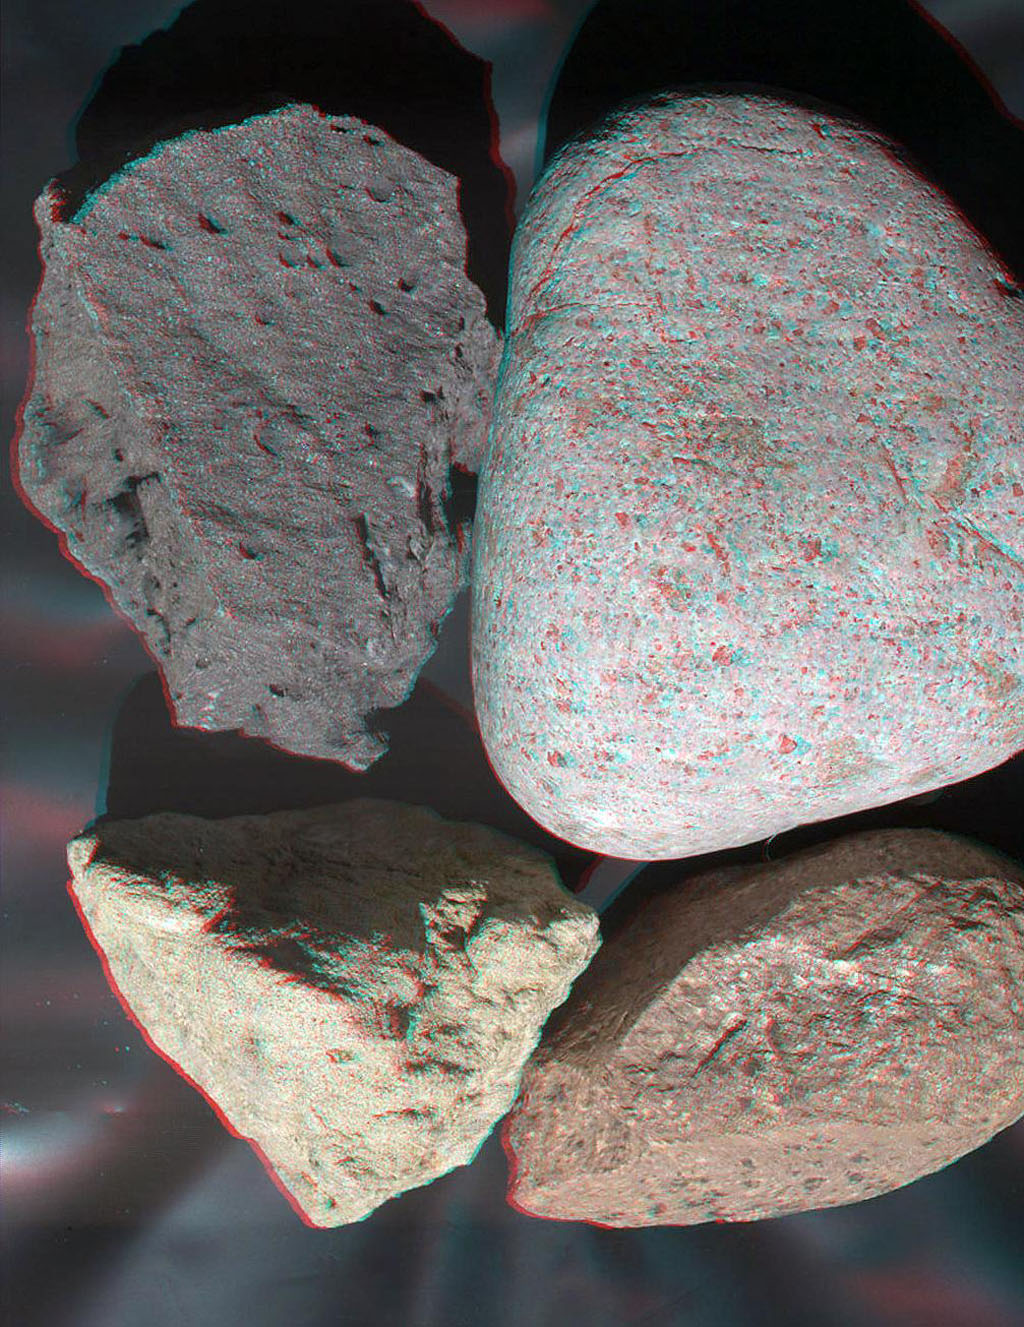 This stereo view of terrestrial rocks combines two images taken by a testing twin of the Mars Hand Lens Imager (MAHLI) camera on NASA's Mars Science Laboratory. 3D glasses are necessary to view this image.